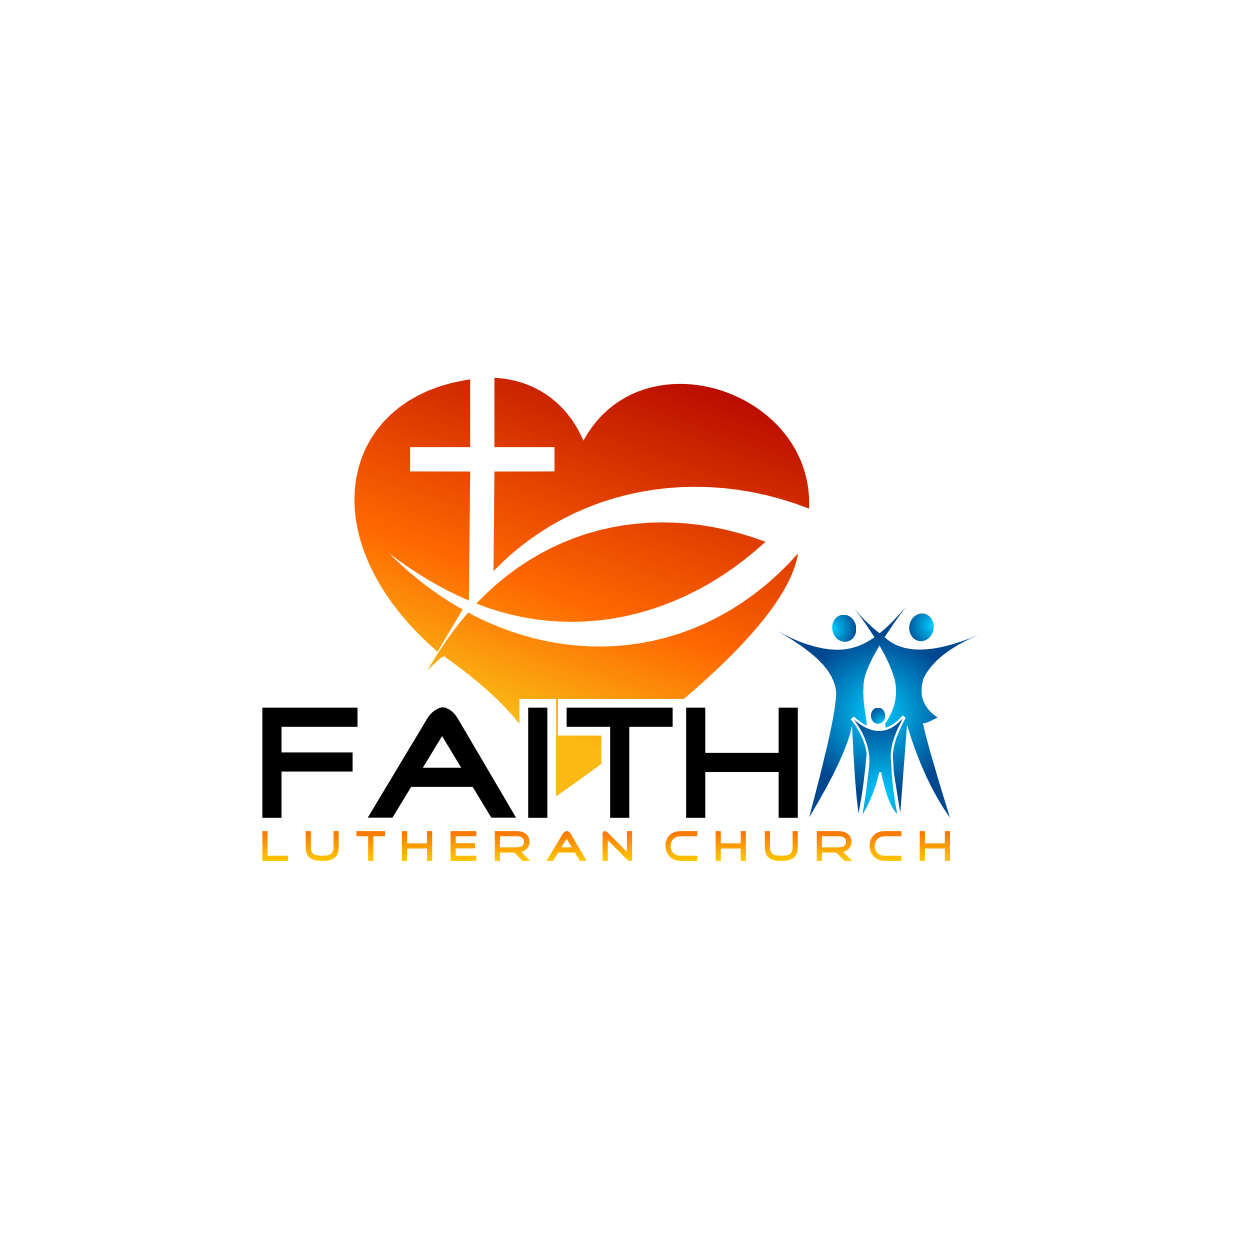 Logo Design by Analla Art - Entry No. 214 in the Logo Design Contest Logo Design for Faith Lutheran Church.